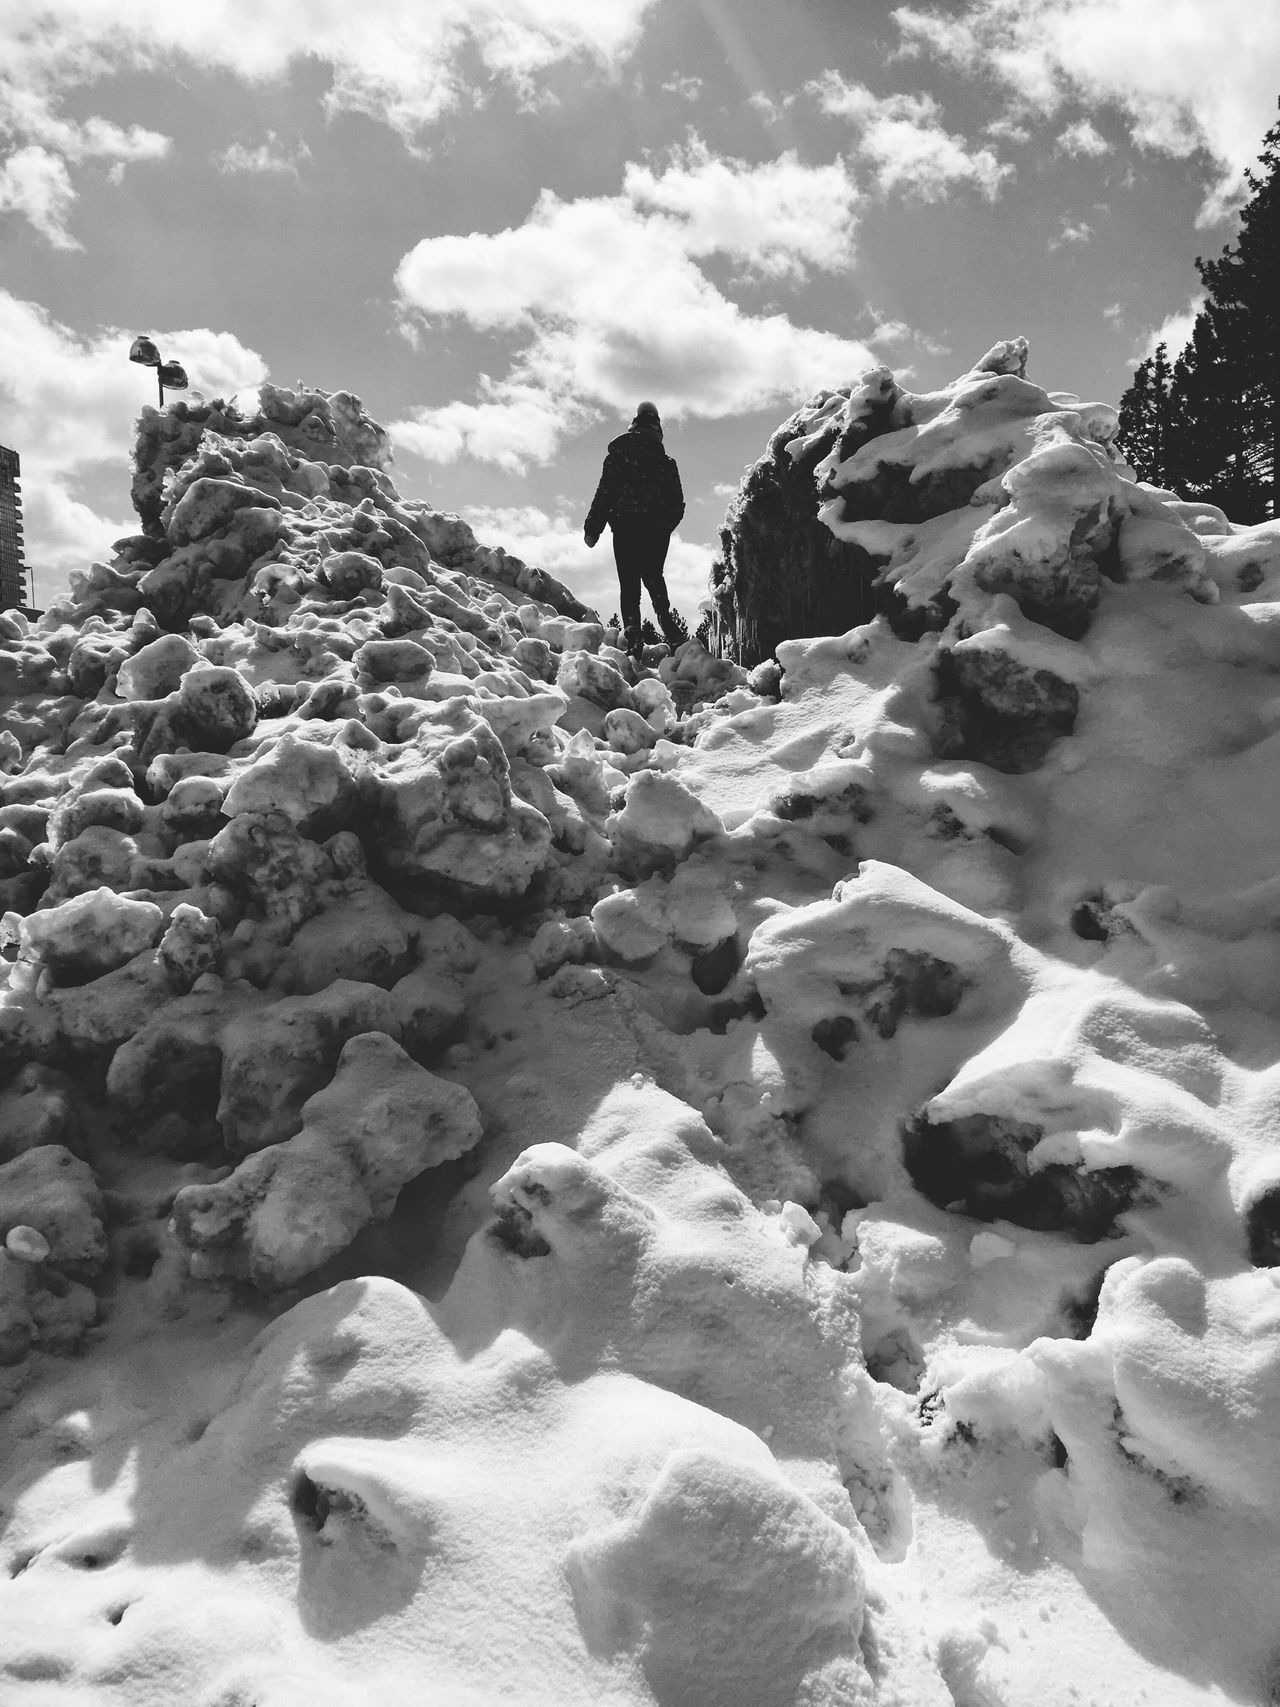 Sky Full Length Real People Rock - Object Lifestyles Nature Outdoors Day Leisure Activity Tranquility Beauty In Nature Vacations Cloud - Sky Scenics Black & White Cold Temperature Low Angle View One Person Snow